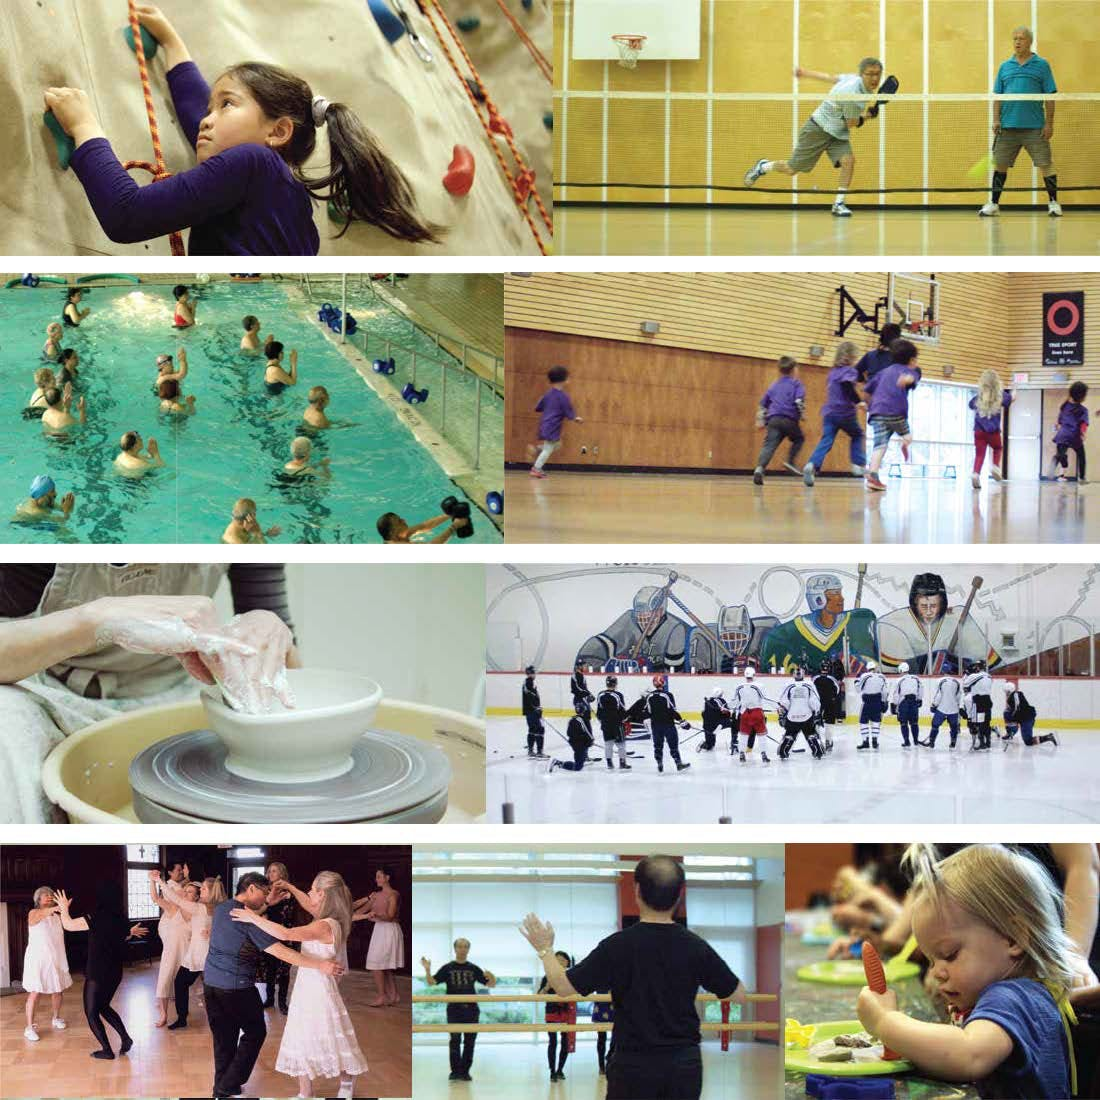 Collage of various community centre activities- pottery, rock climbing, indoor sports, swim class, ice hockey, dance lessons, yoga, children playing, etc.